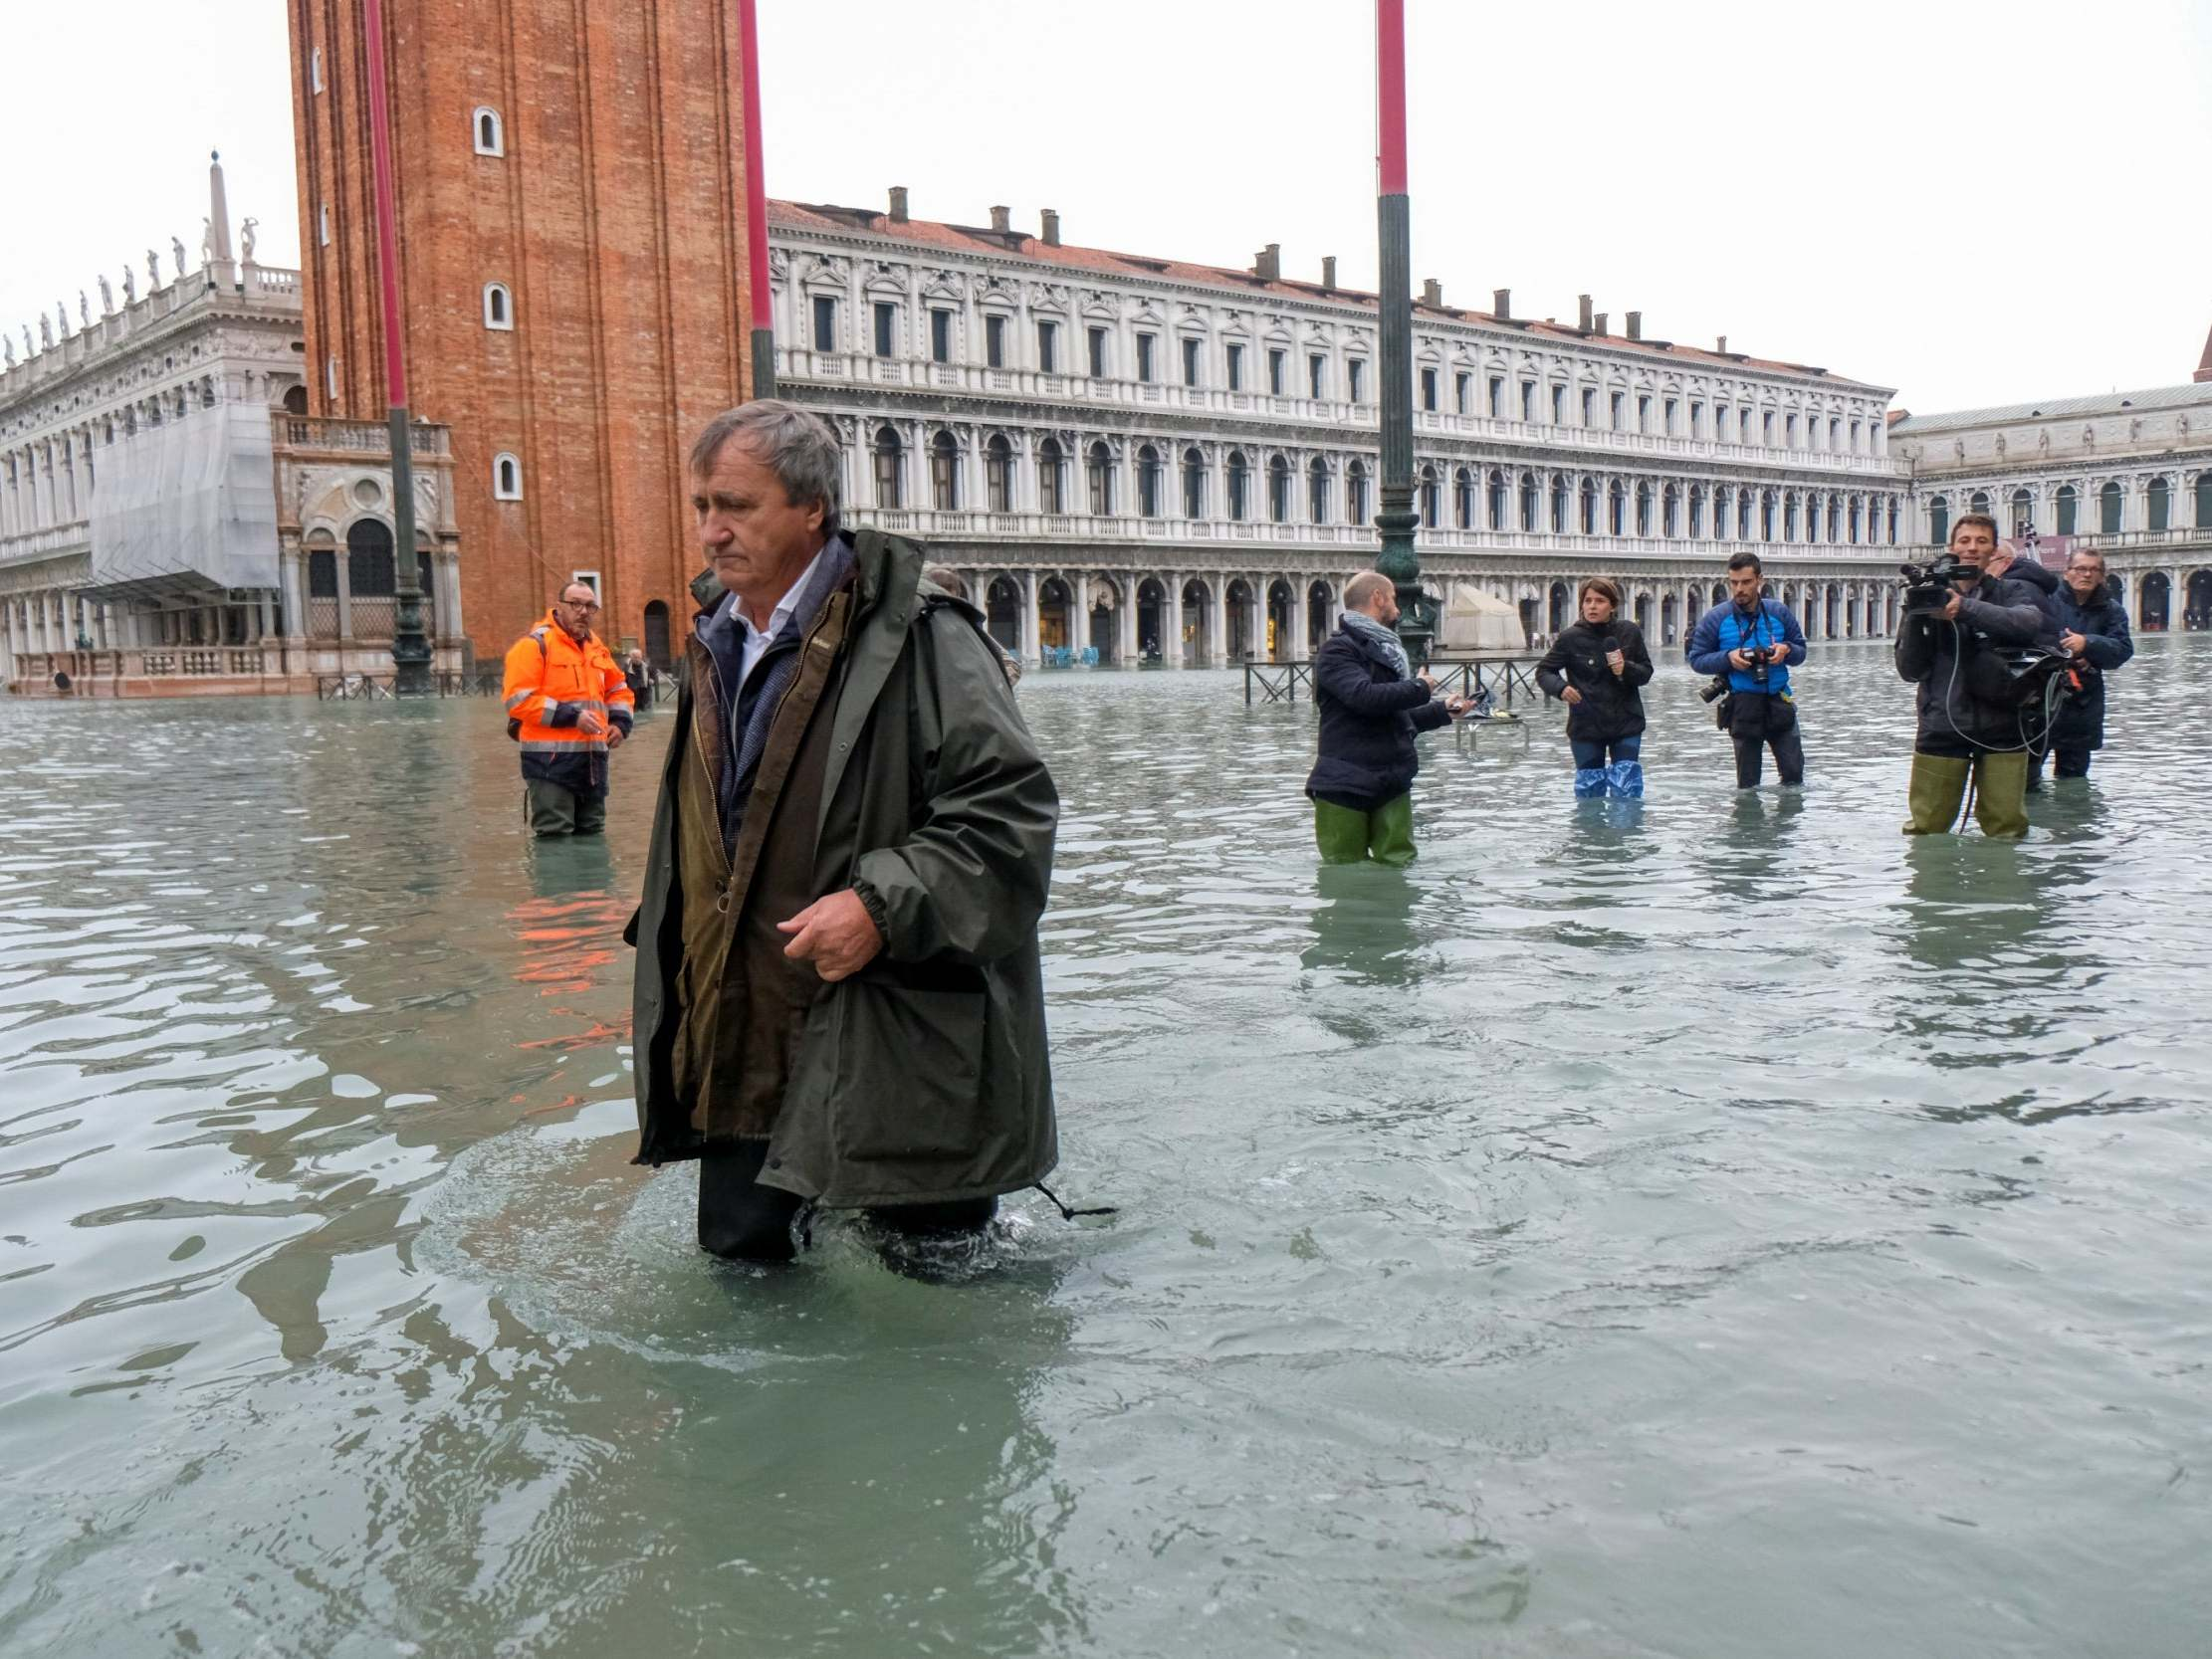 Venice flooding news – live: State of emergency demanded by mayor as water approaches record levels